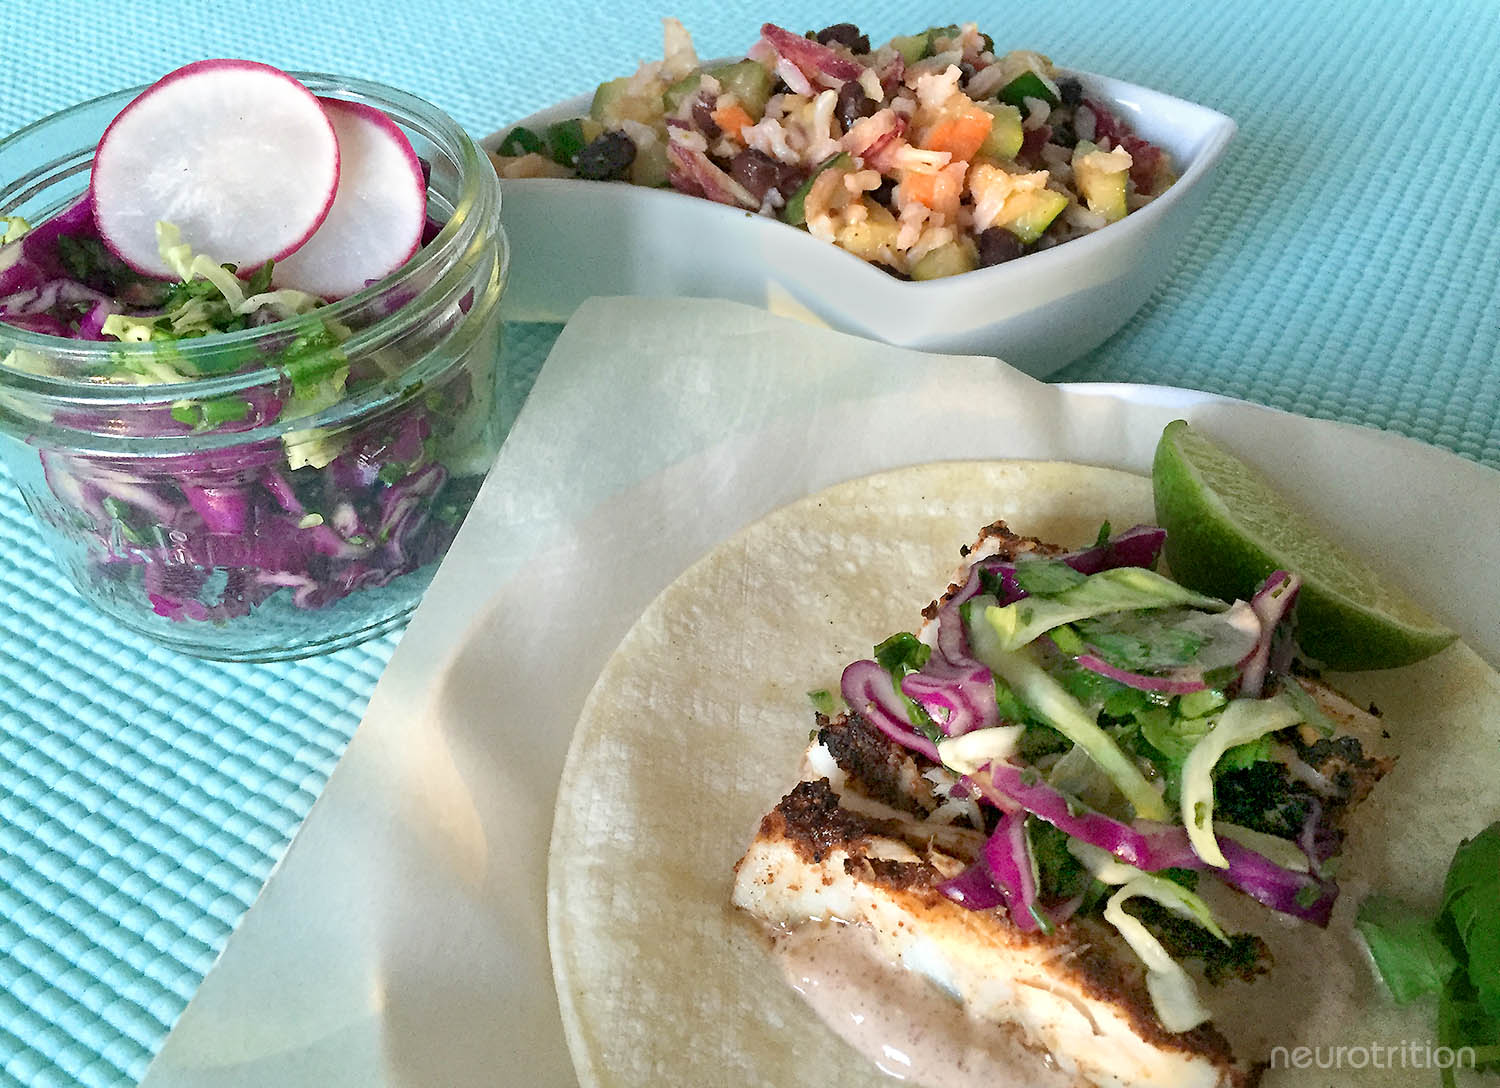 Blackened Mahi Mahi Tacos Neurotrition